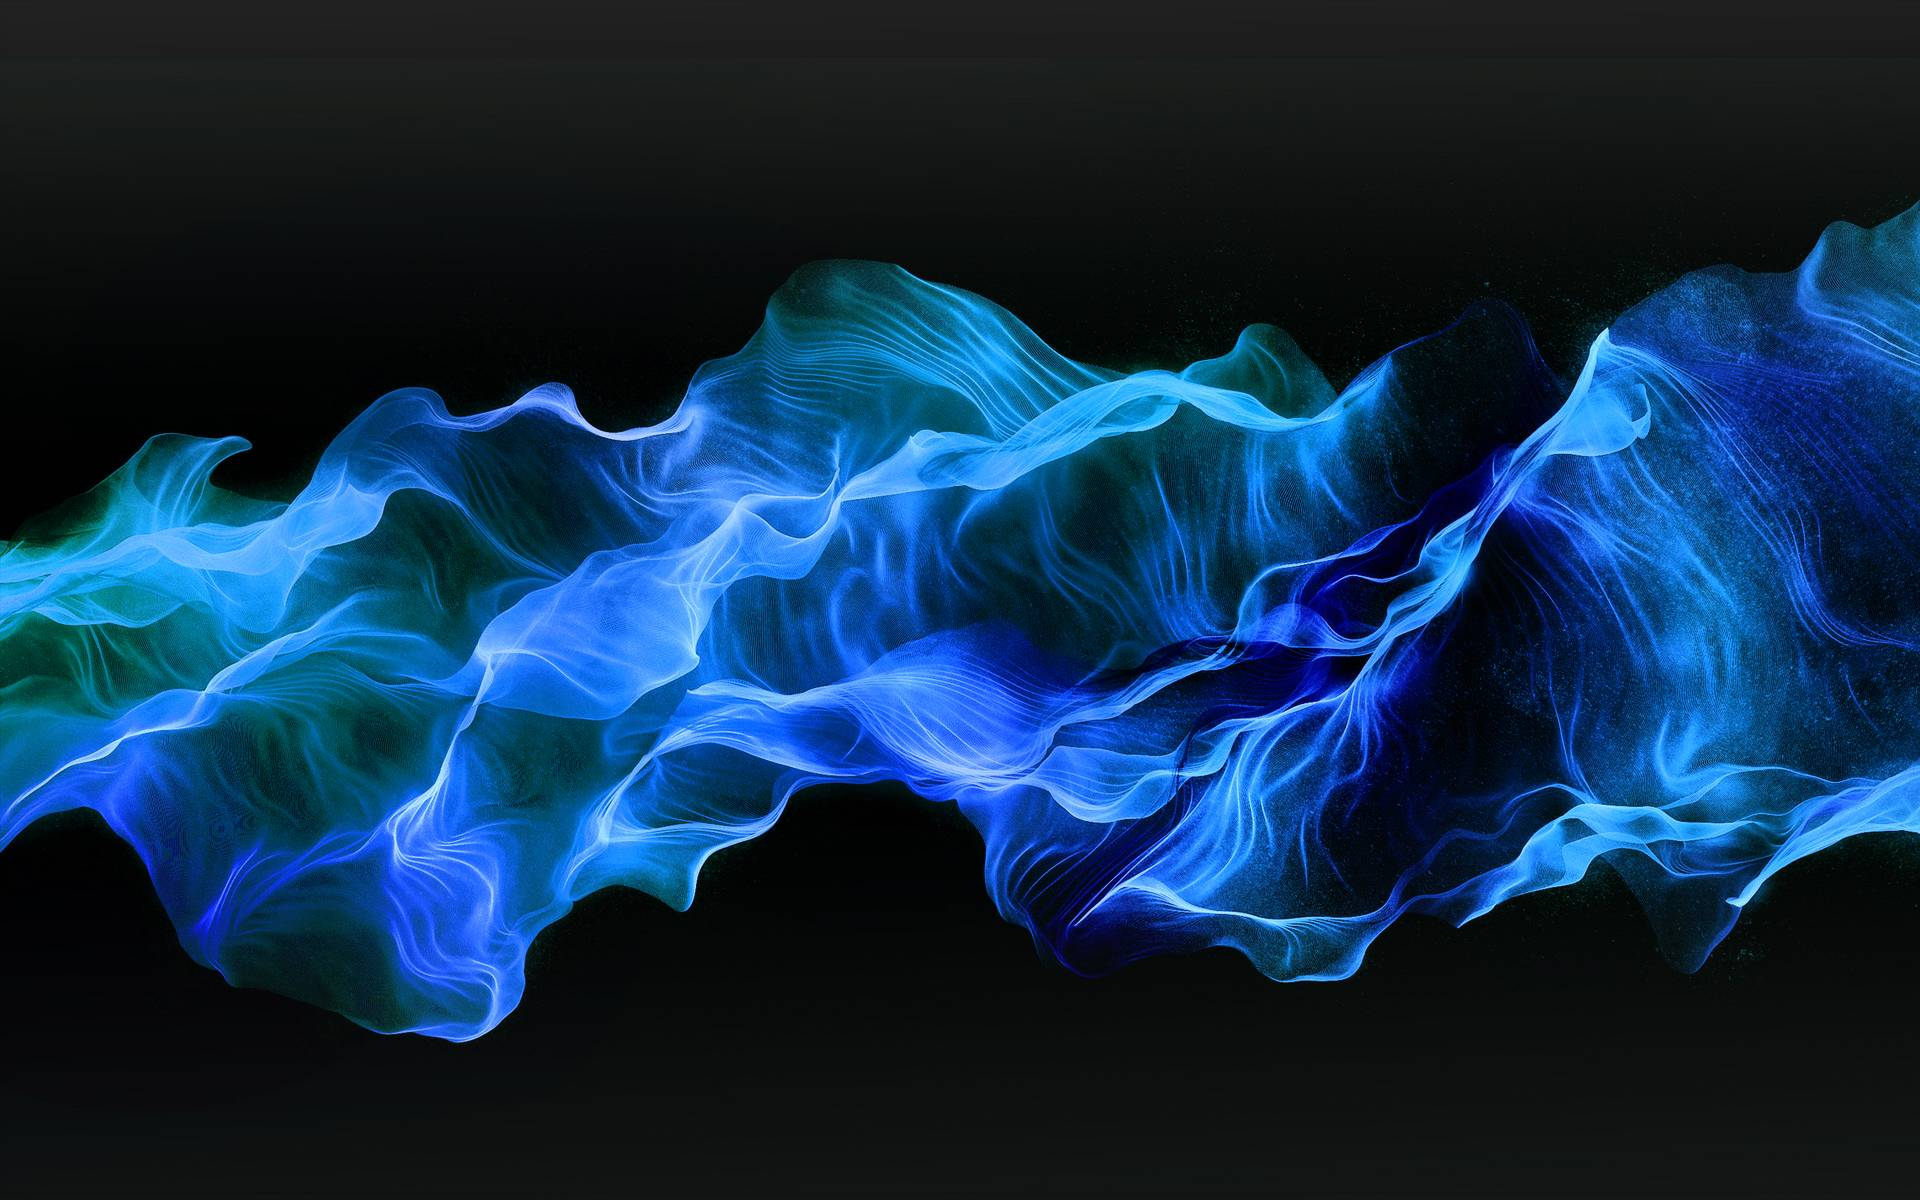 Blue Fire Wallpapers - Wallpaper Cave